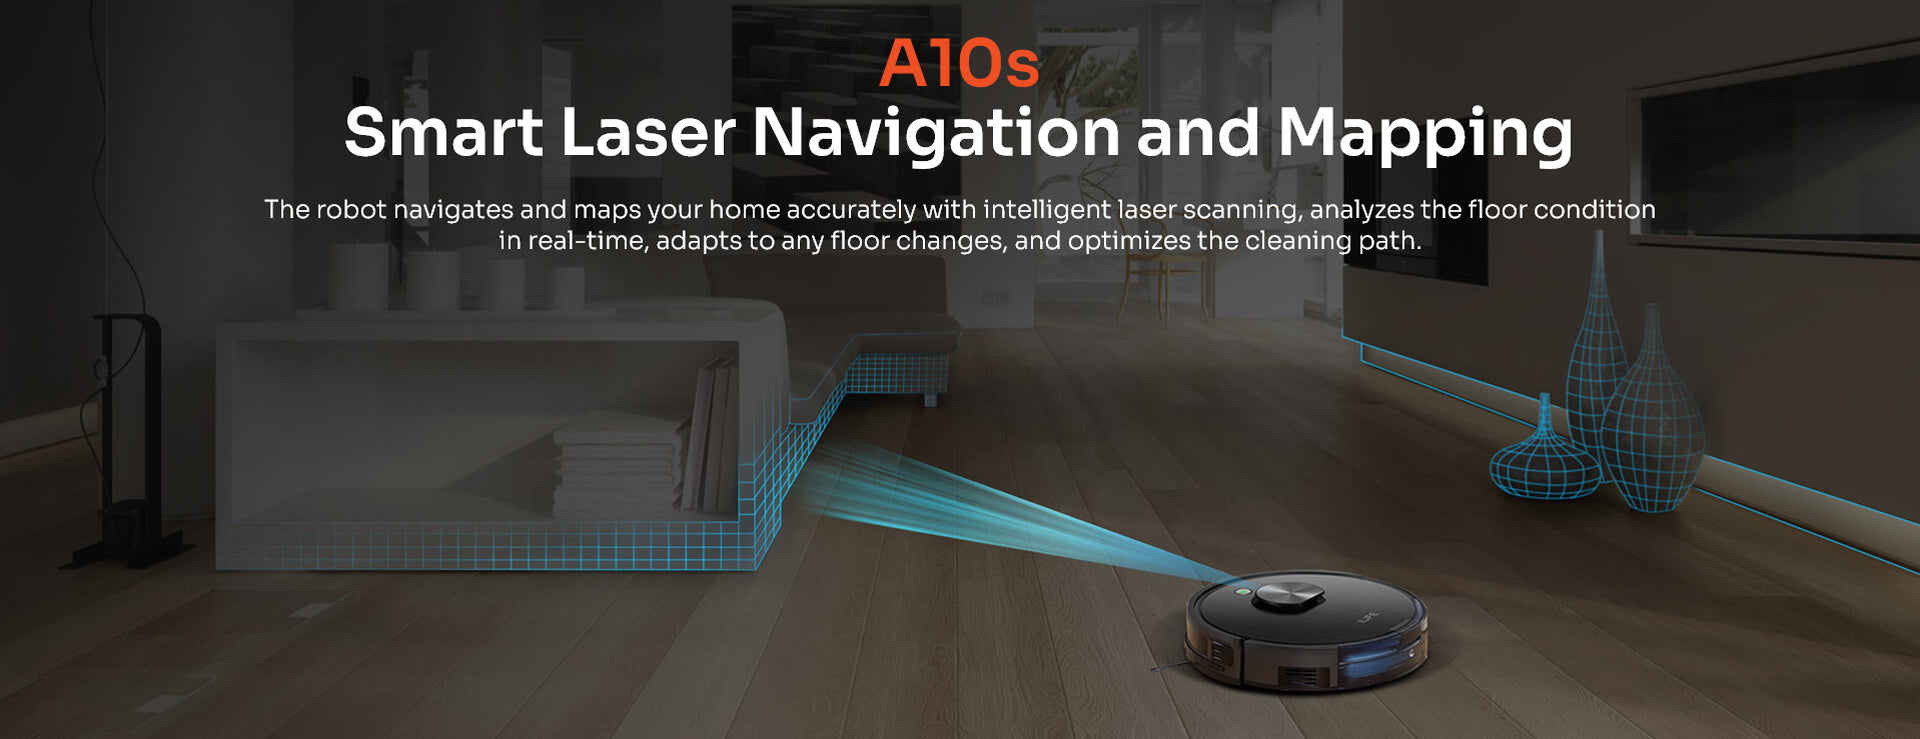 smart laser navigation and mapping